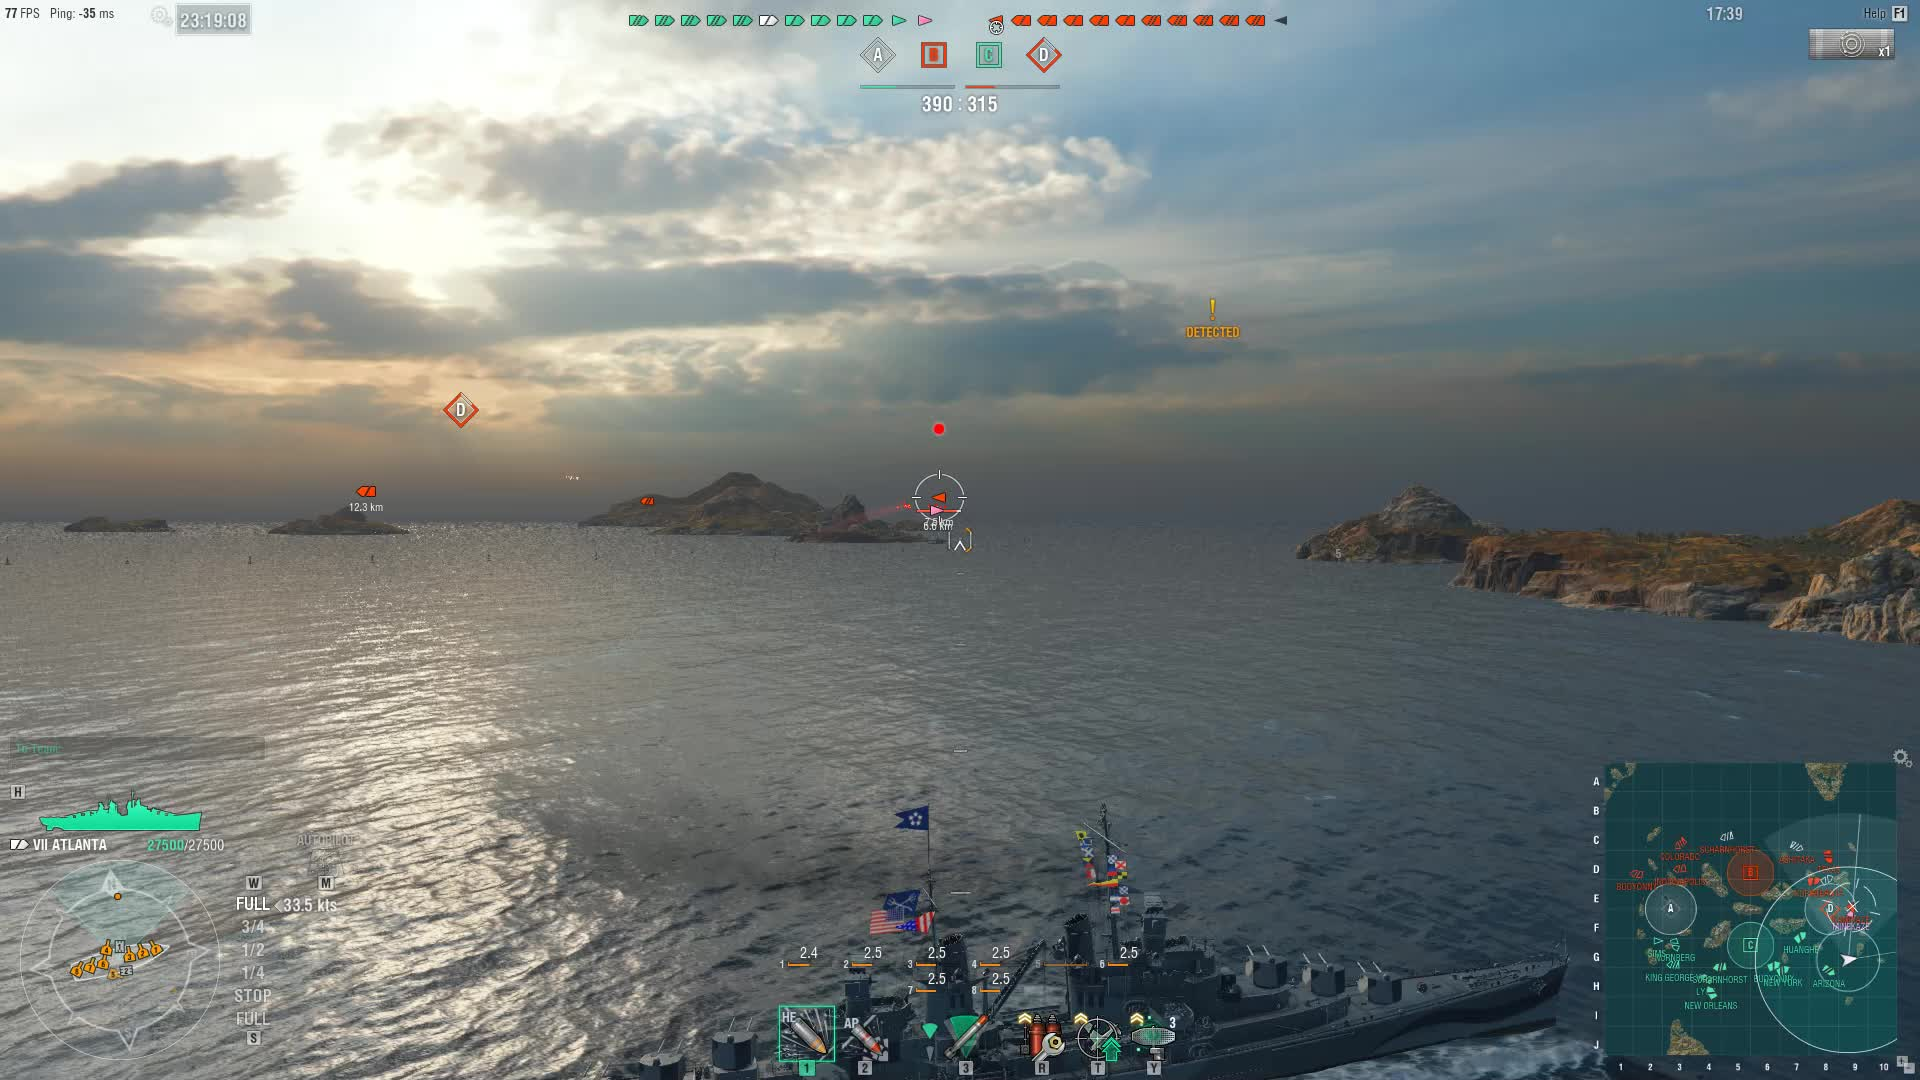 worldofwarships, World of Warships 07.27.2018 - 23.19.06.03 GIFs